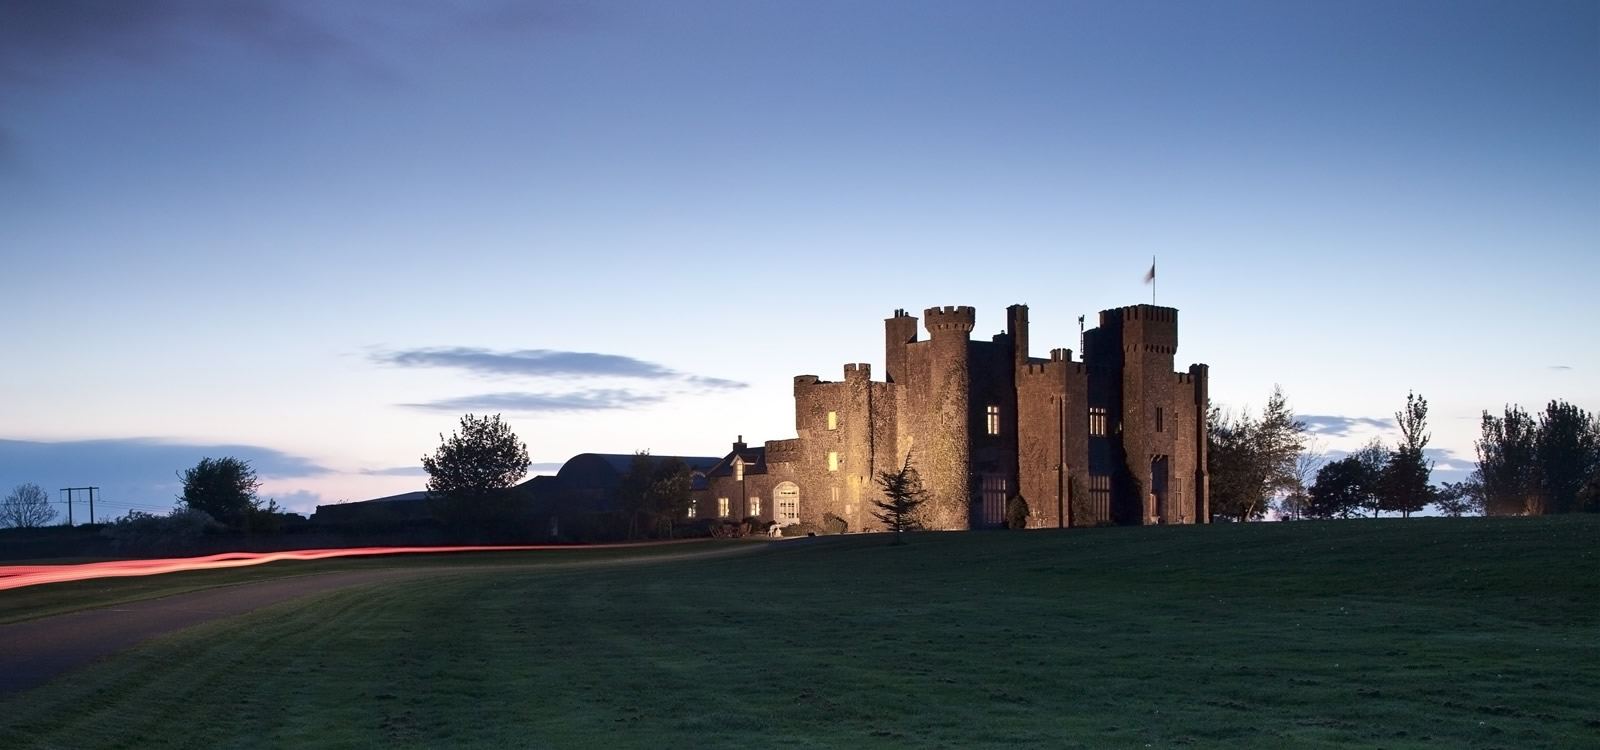 Lisheen Castle - restored ruin to luxurious castle vacation property